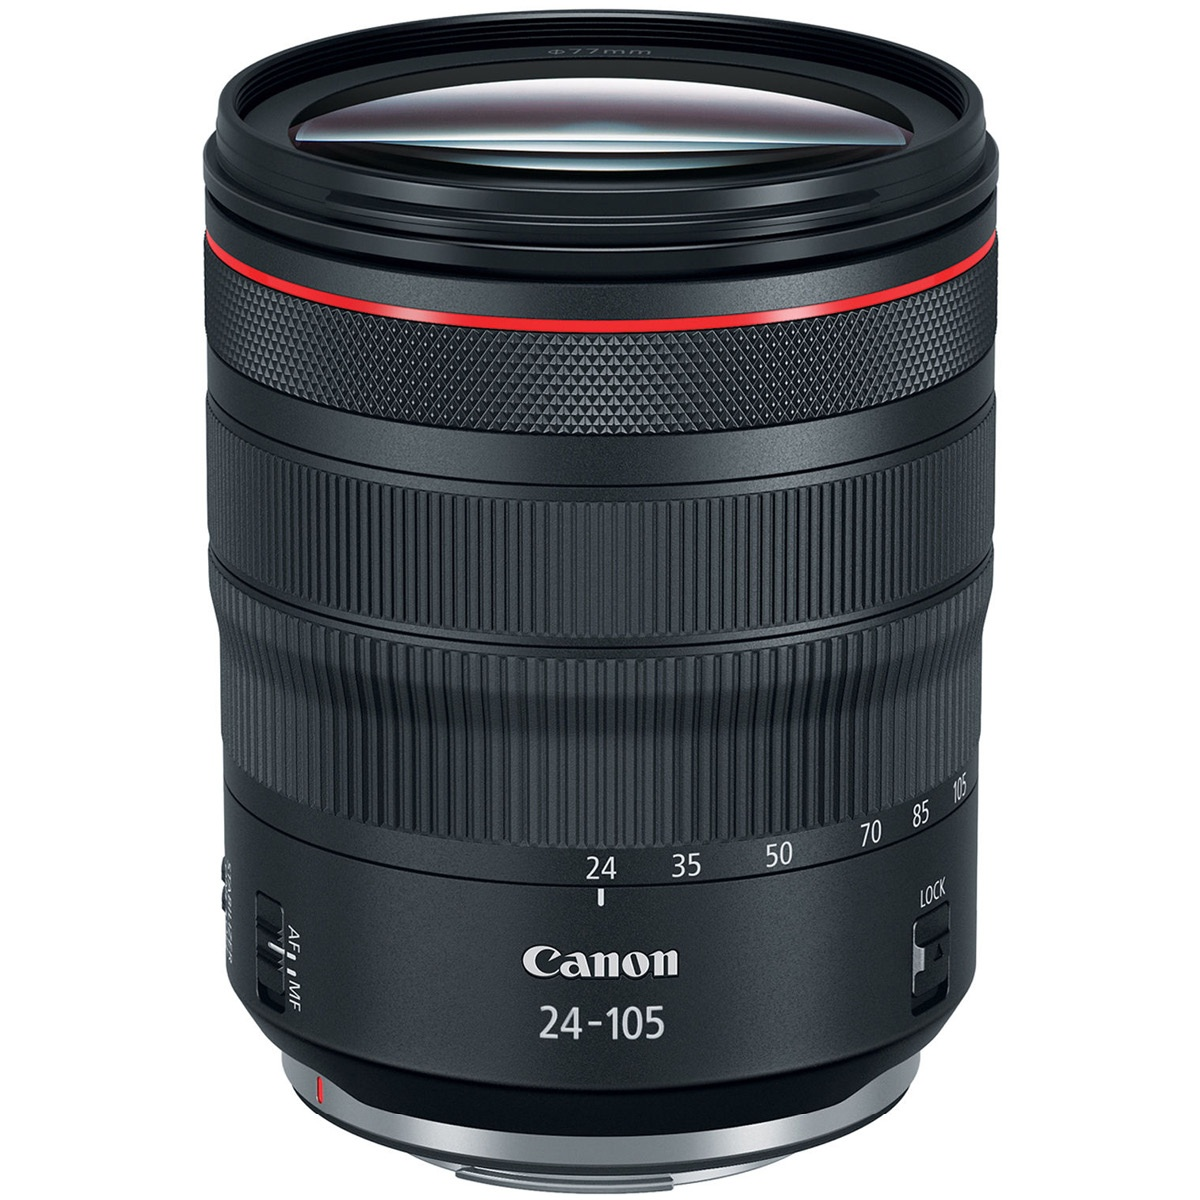 Canon RF 24-105 mm 1:4 L IS USM